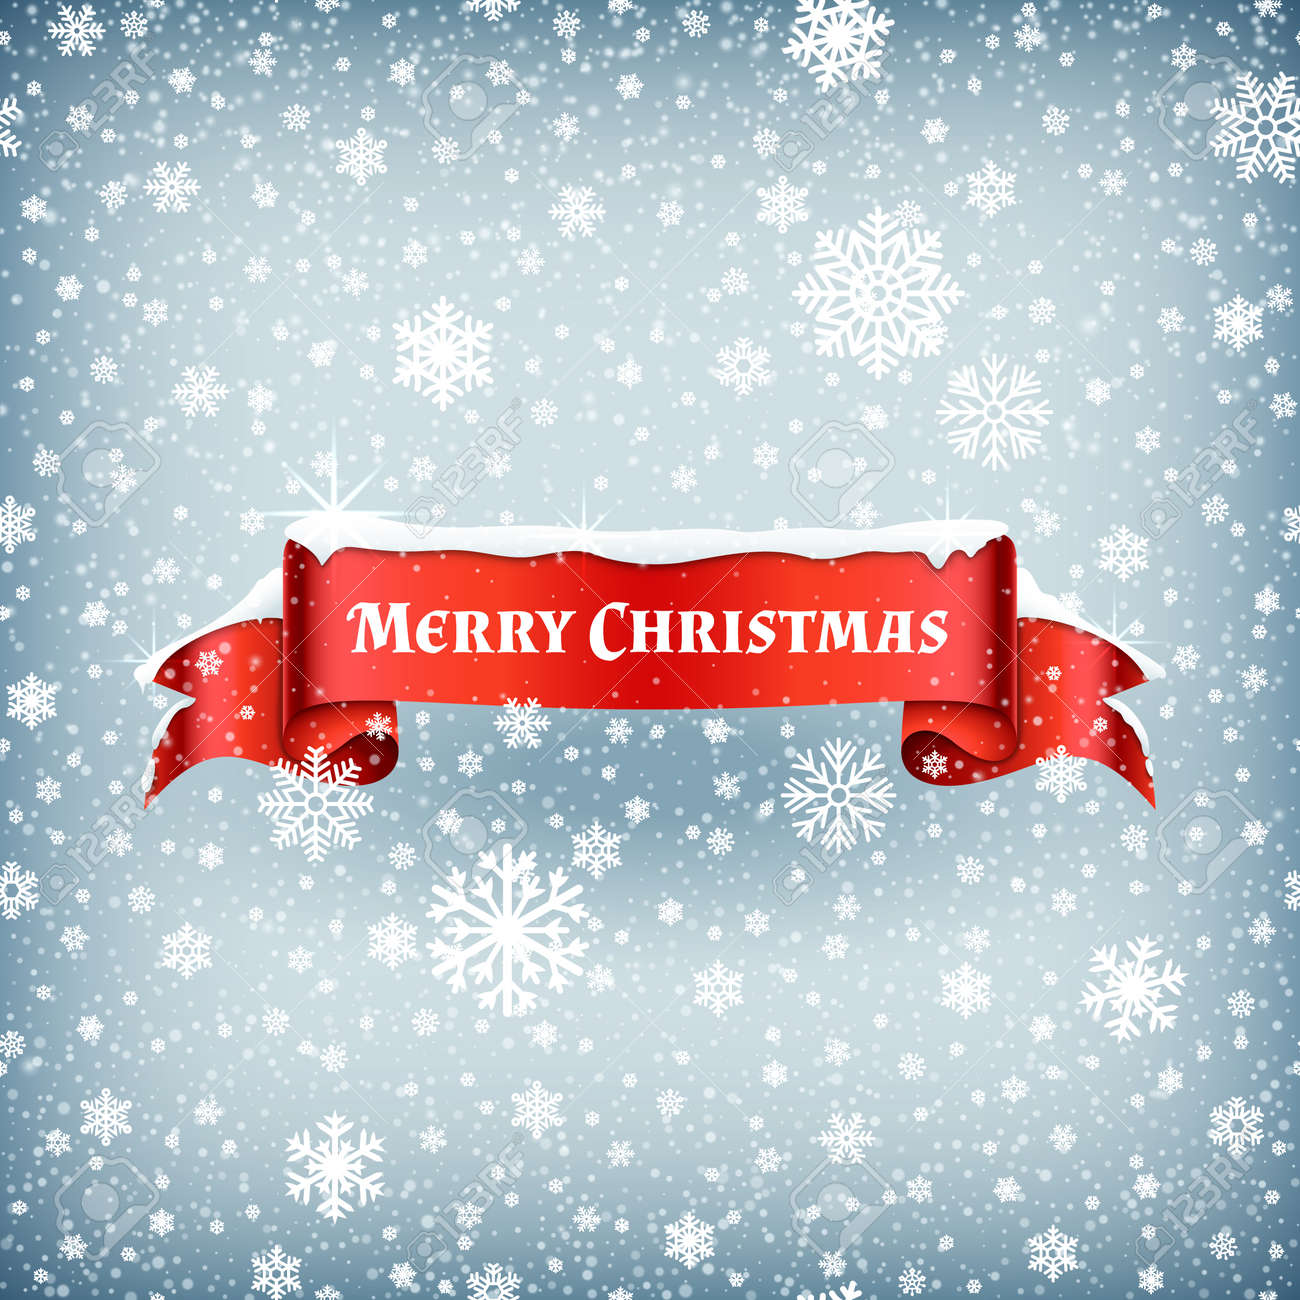 Merry Christmas celebration background with falling snow and red banner ribbon vector illustration. Xmas ribbon banner with snowflake - 166823937